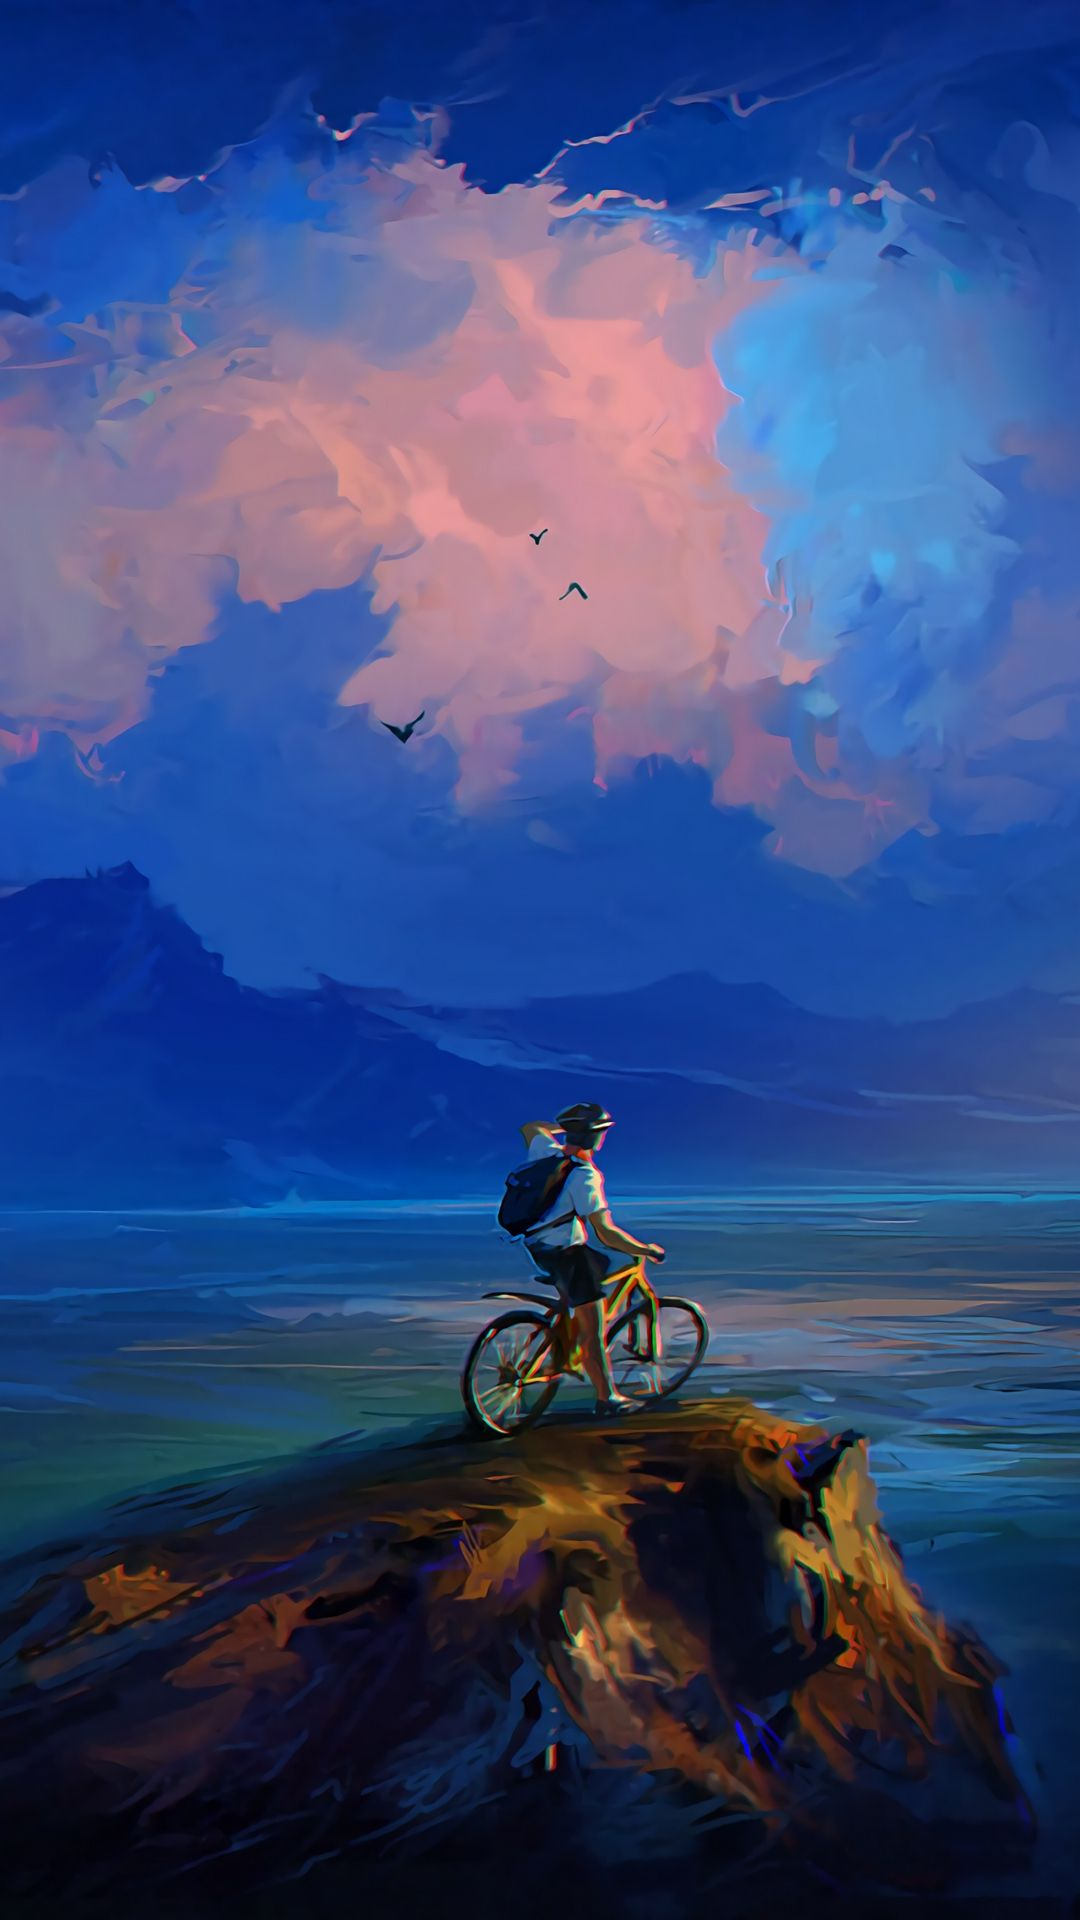 Tap to download rock cyclist cliff art wallpaper